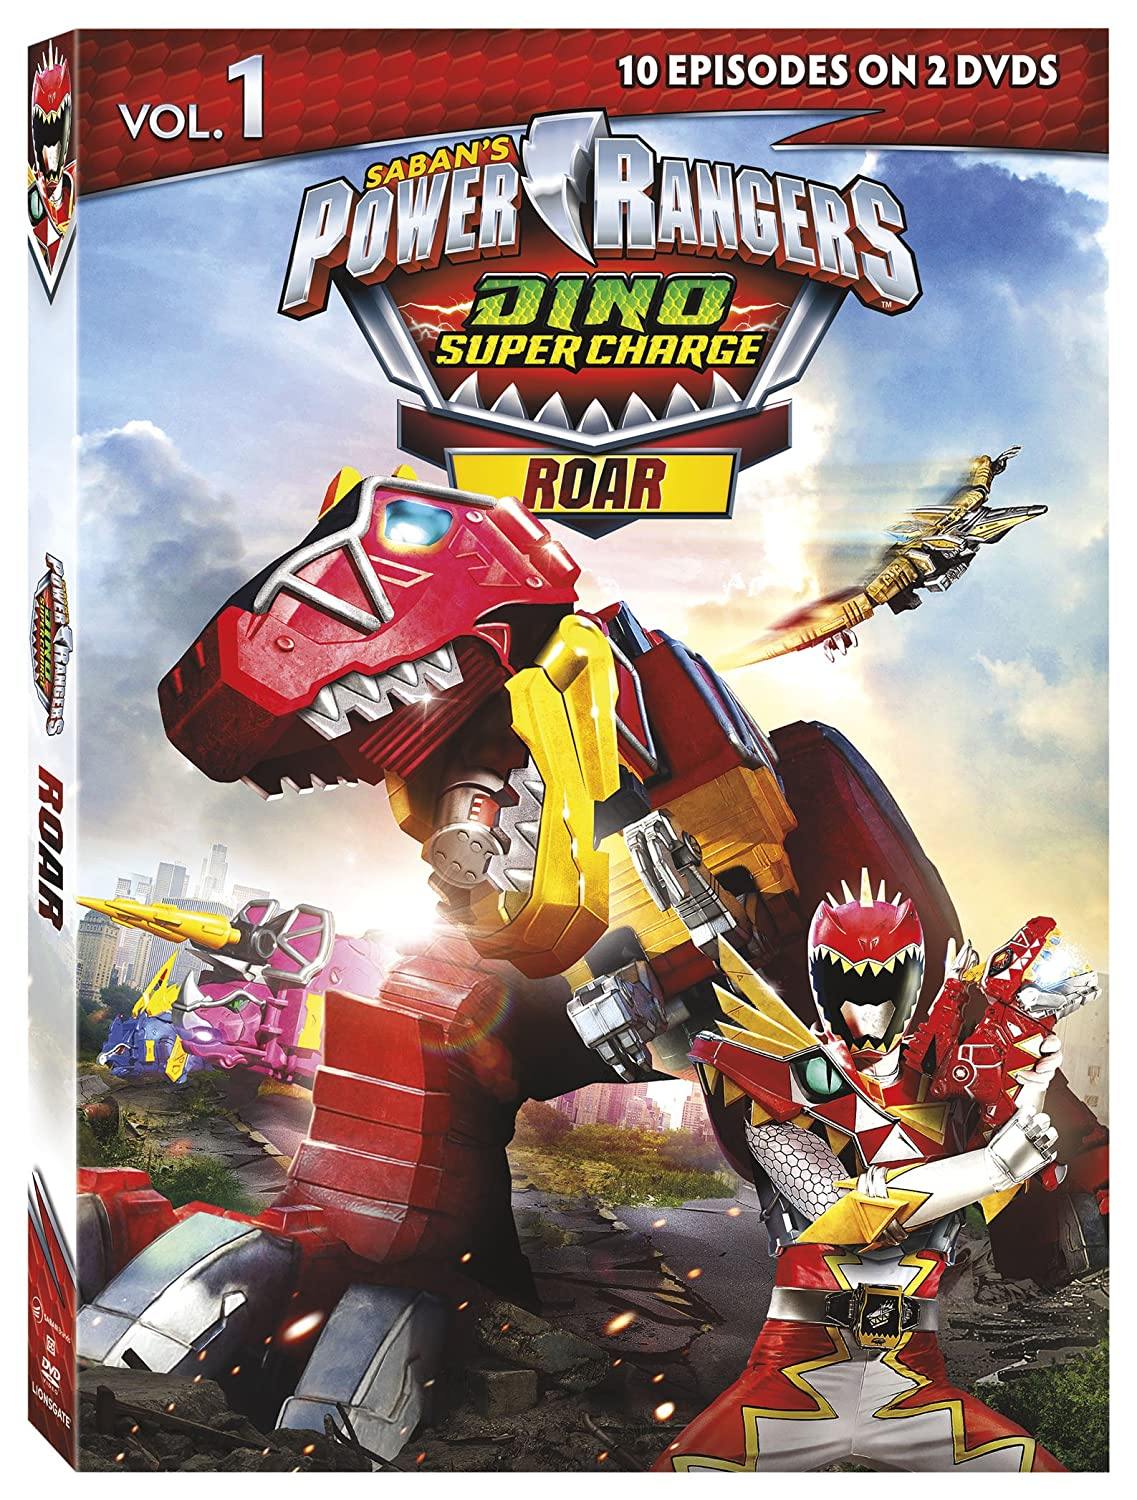 Amazon.com: Power Rangers: Dino Super Charge - Roar: Brennan ...